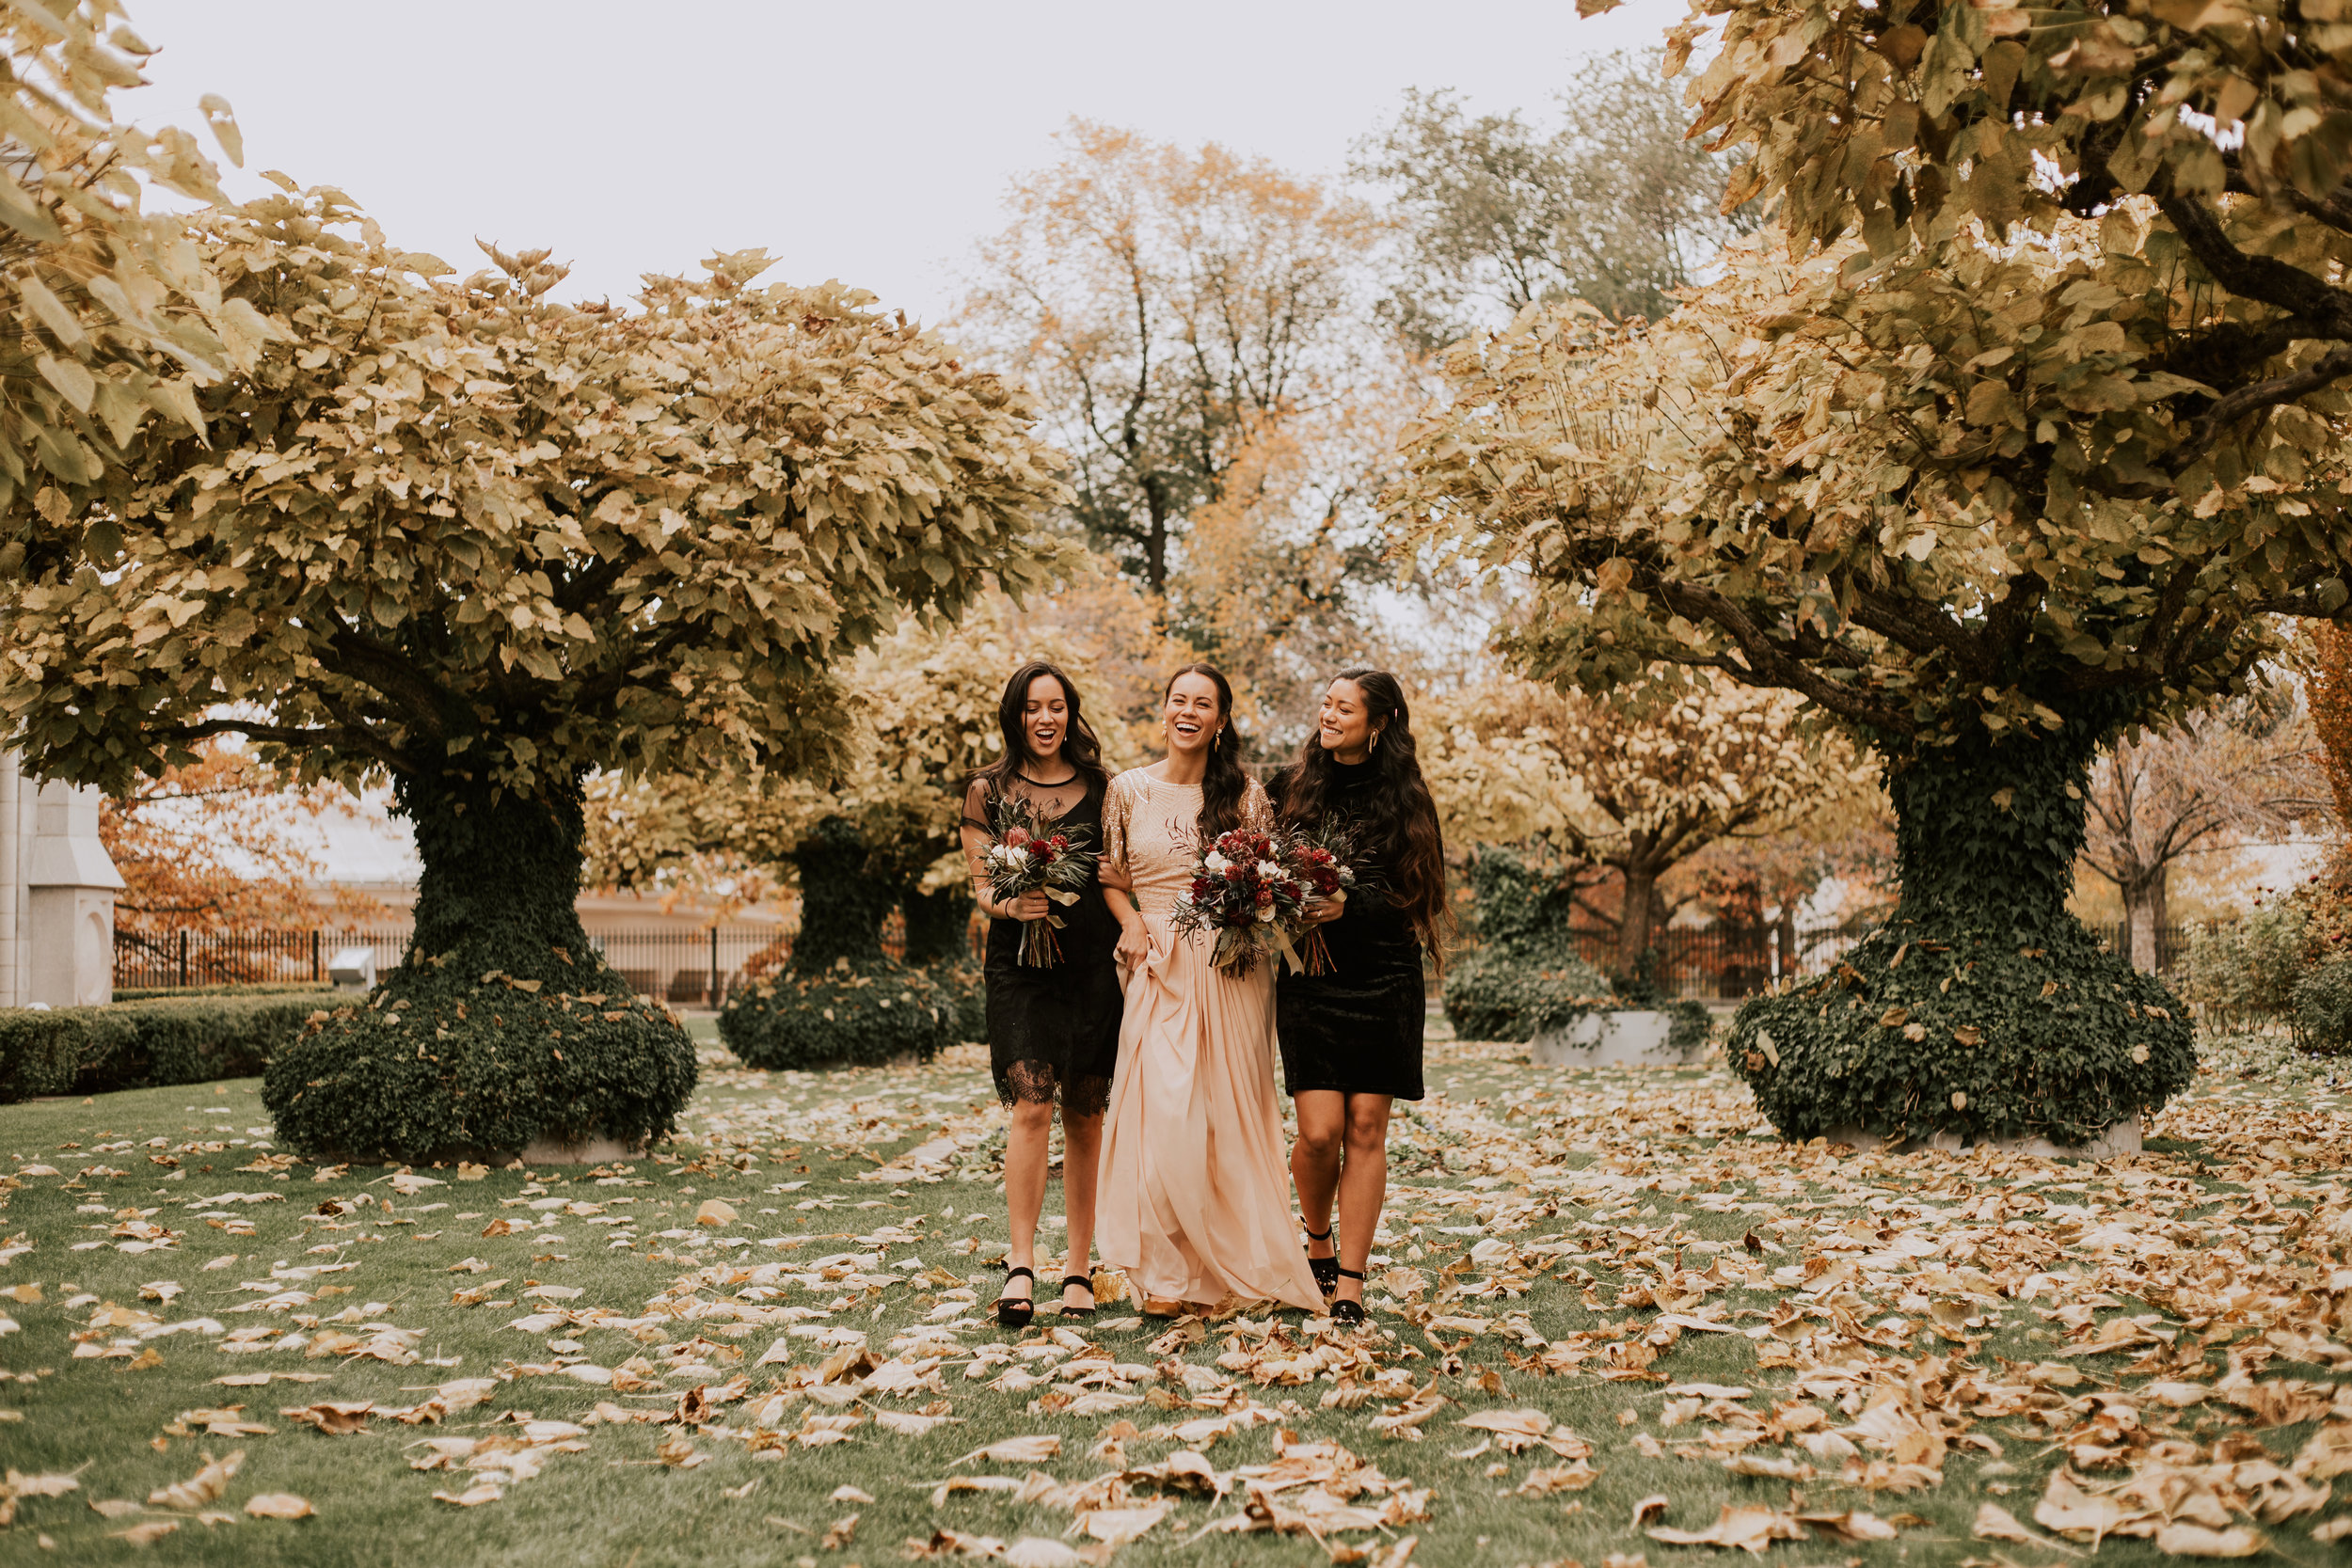 Halloween Wedding in Salt Lake City - Salt Lake City Wedding Photographer - Utah Wedding Photography by Natalie Michelle Photo Co.